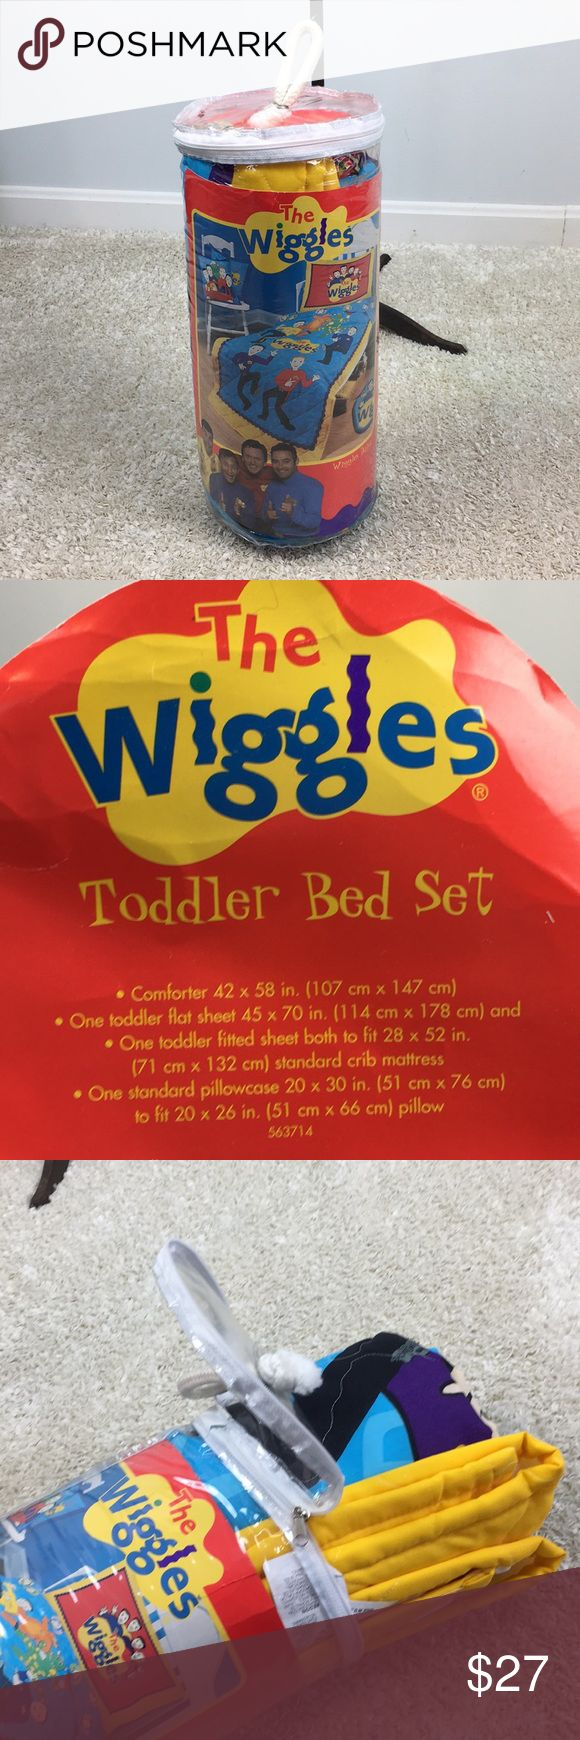 RARE BRAND NEW Wiggles 4PC Toddler Bed Set Comforter Toddler flat sheet, fitted sheet and pillow case! Never opened till pic. brand New! Rare a vintage Hard to find! Who doesn't love the wiggles ?? Fruit salad! Home Fashions Other